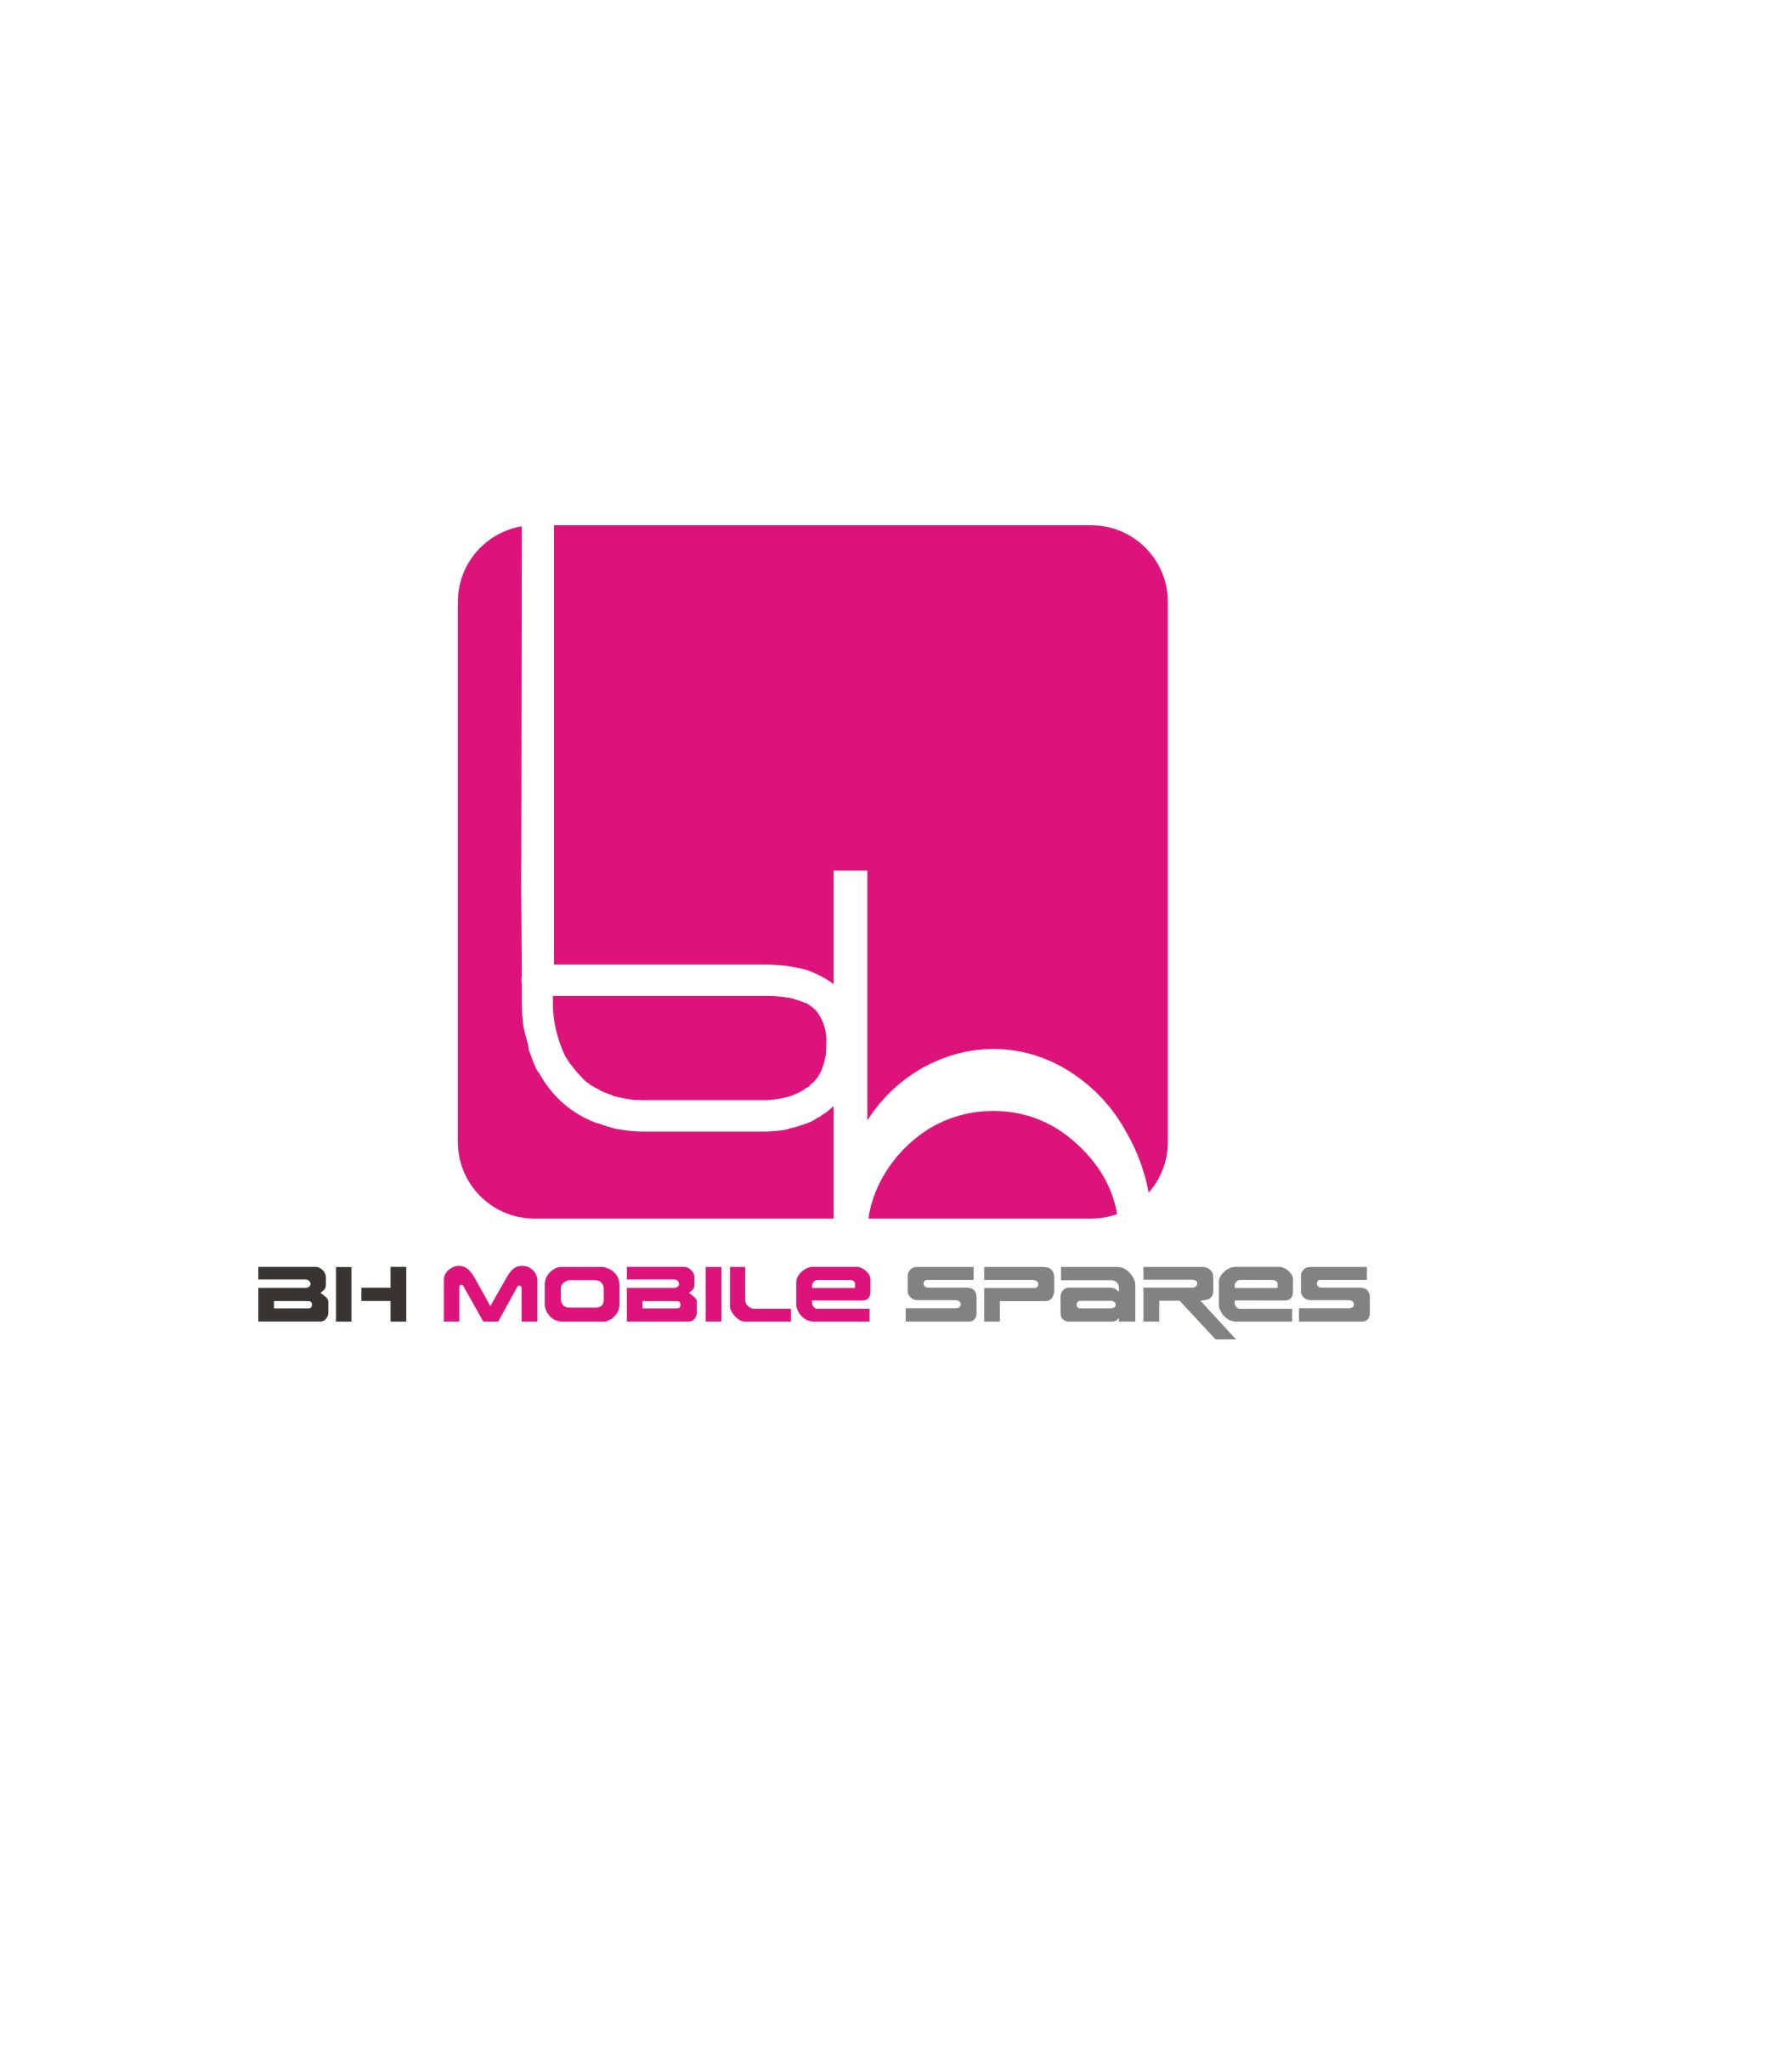 19 modern colorful logo designs for bh mobile spares a